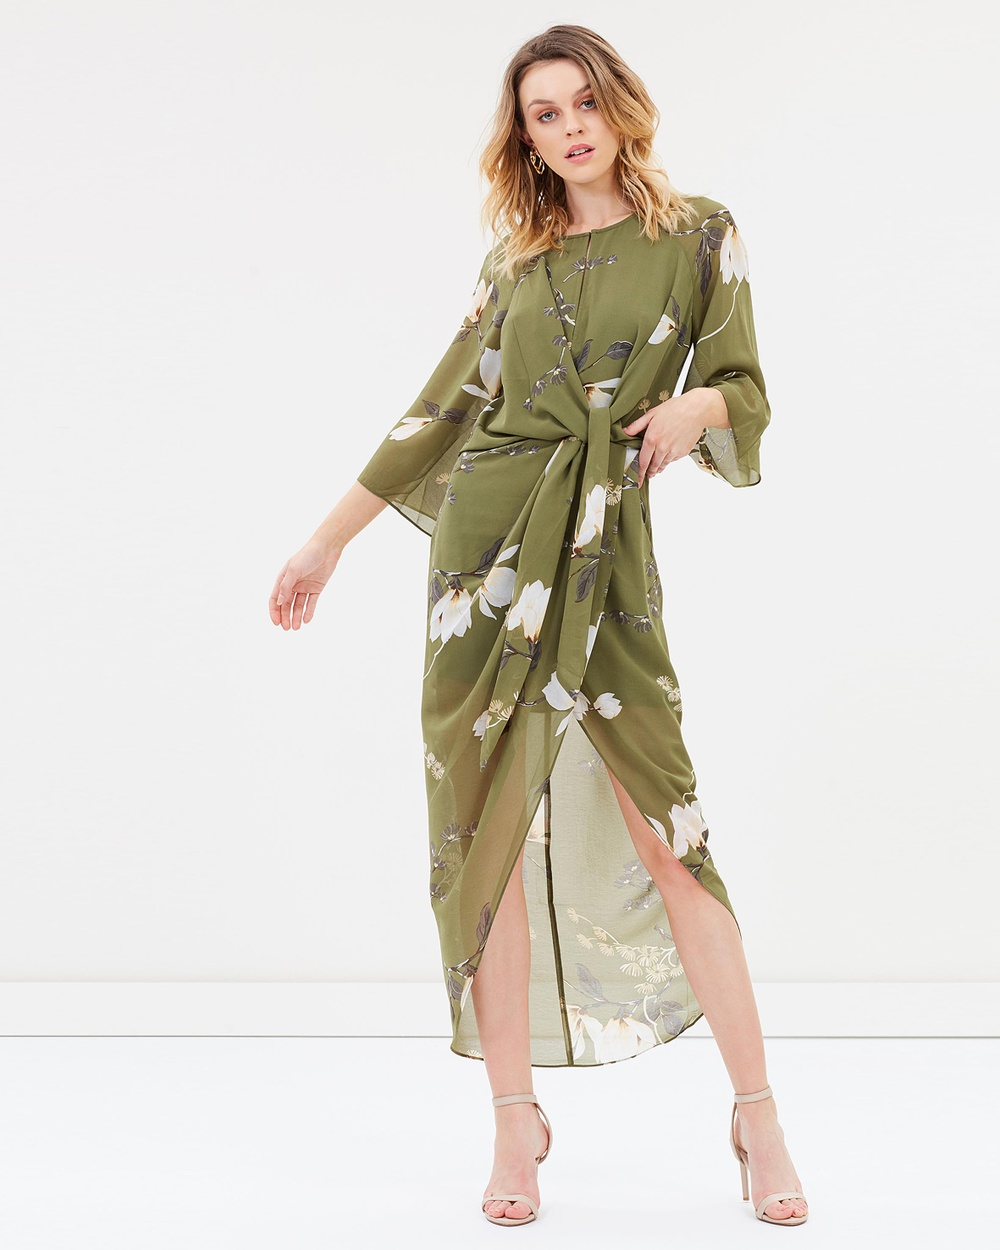 Shona Joy Tie Front Draped Midi Dress Printed Dresses Moss Multi Tie Front Draped Midi Dress